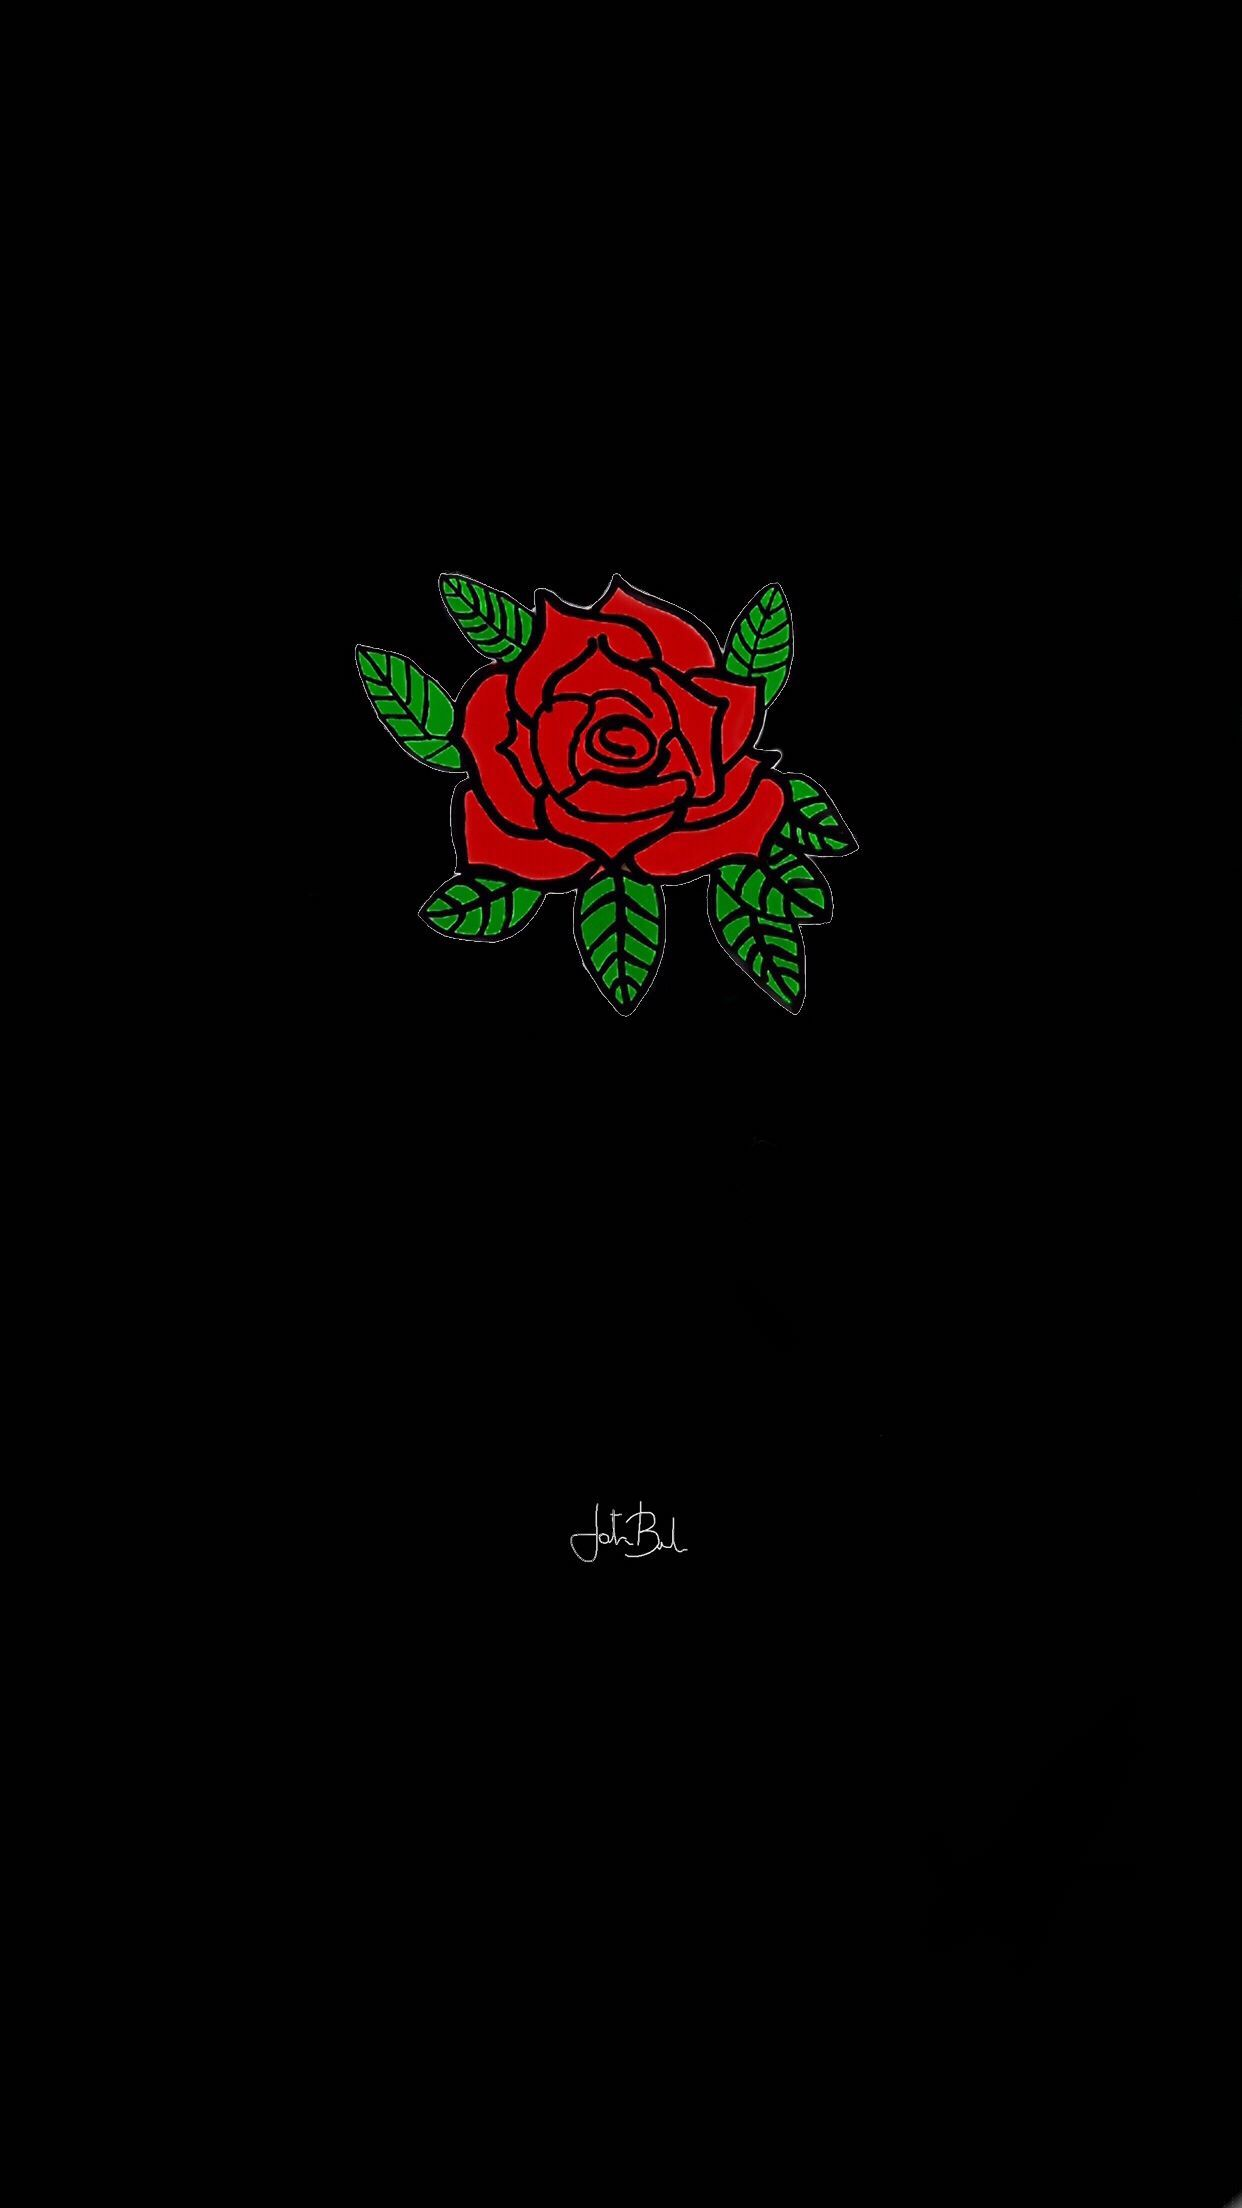 Cartoon Rose Wallpaper : cartoon, wallpaper, Cartoon, Wallpapers, Backgrounds, WallpaperAccess